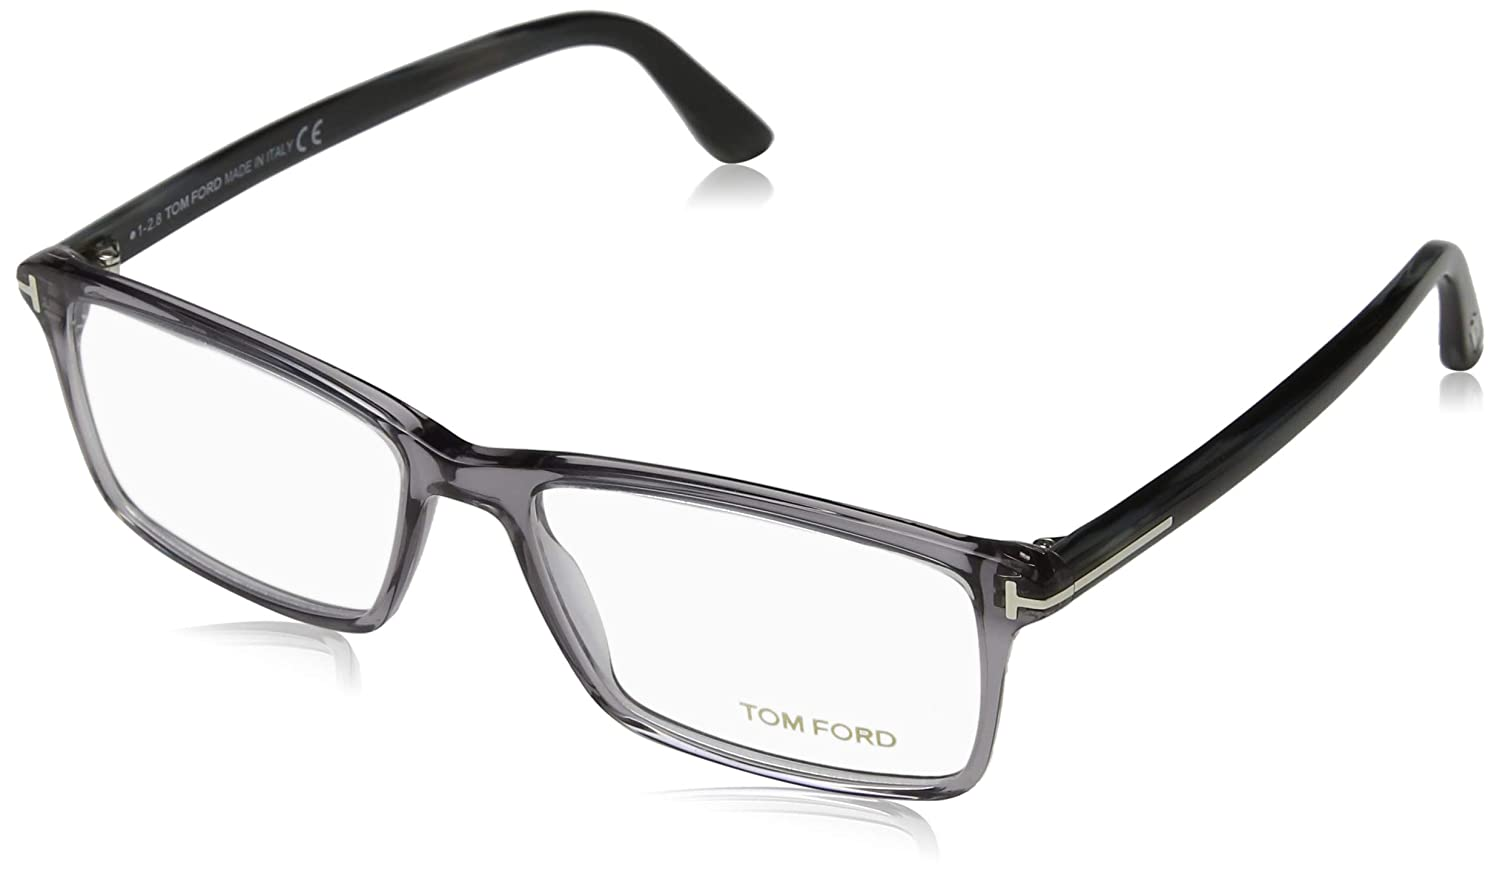 3a57a0b239a9 TOM FORD Men's TF 5408 020 Clear Gray Clear Rectangular Eyeglasses 56mm at  Amazon Men's Clothing store: